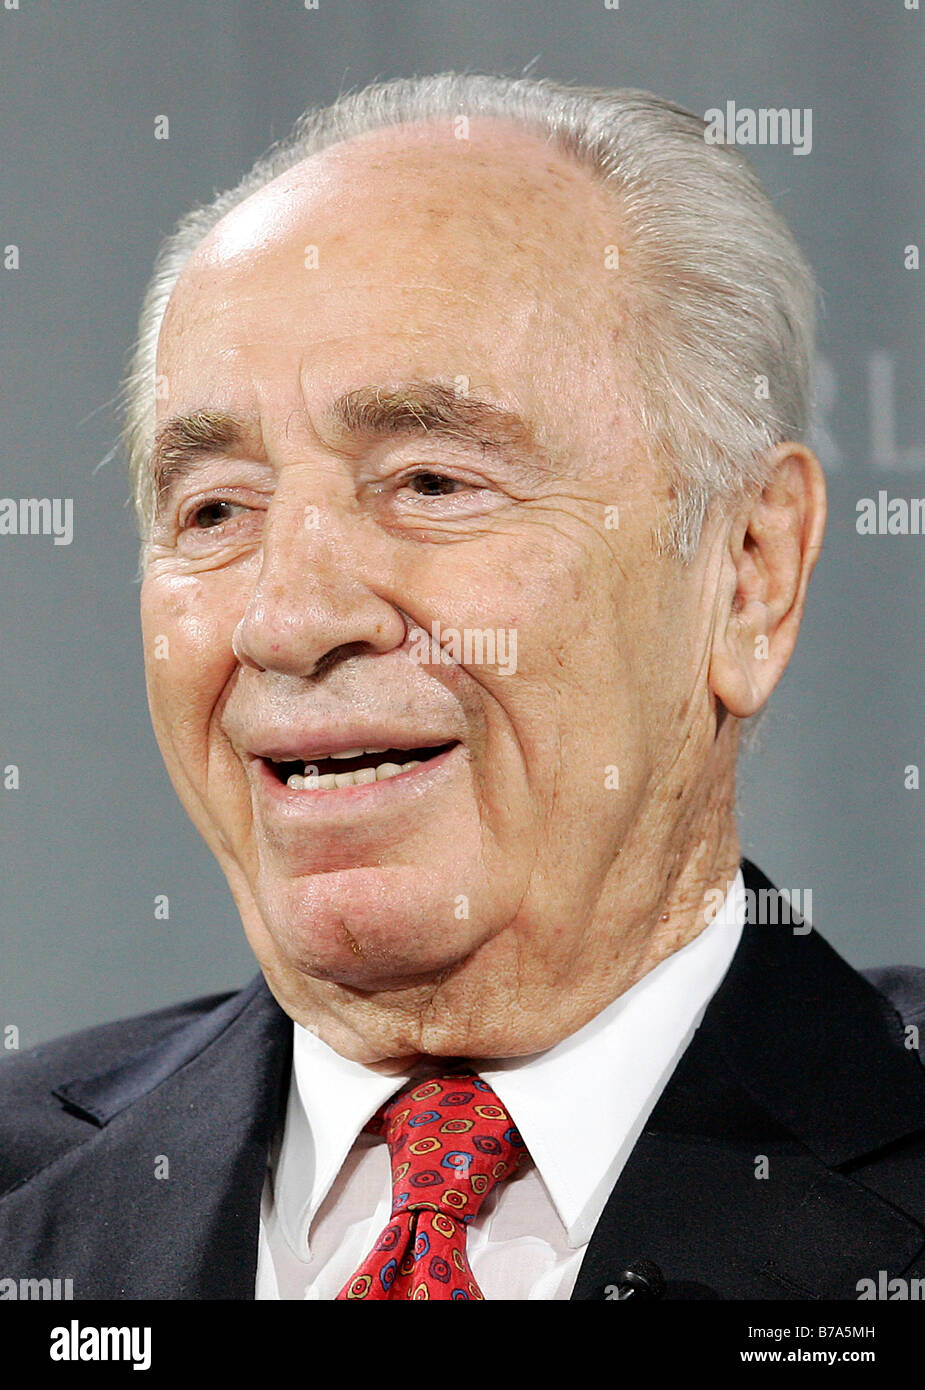 Shimon Peres, Israel, Deputy Prime Minister of Israel and Nobel Peace Prize winner, in Passau, Bavaria, Germany, - Stock Image